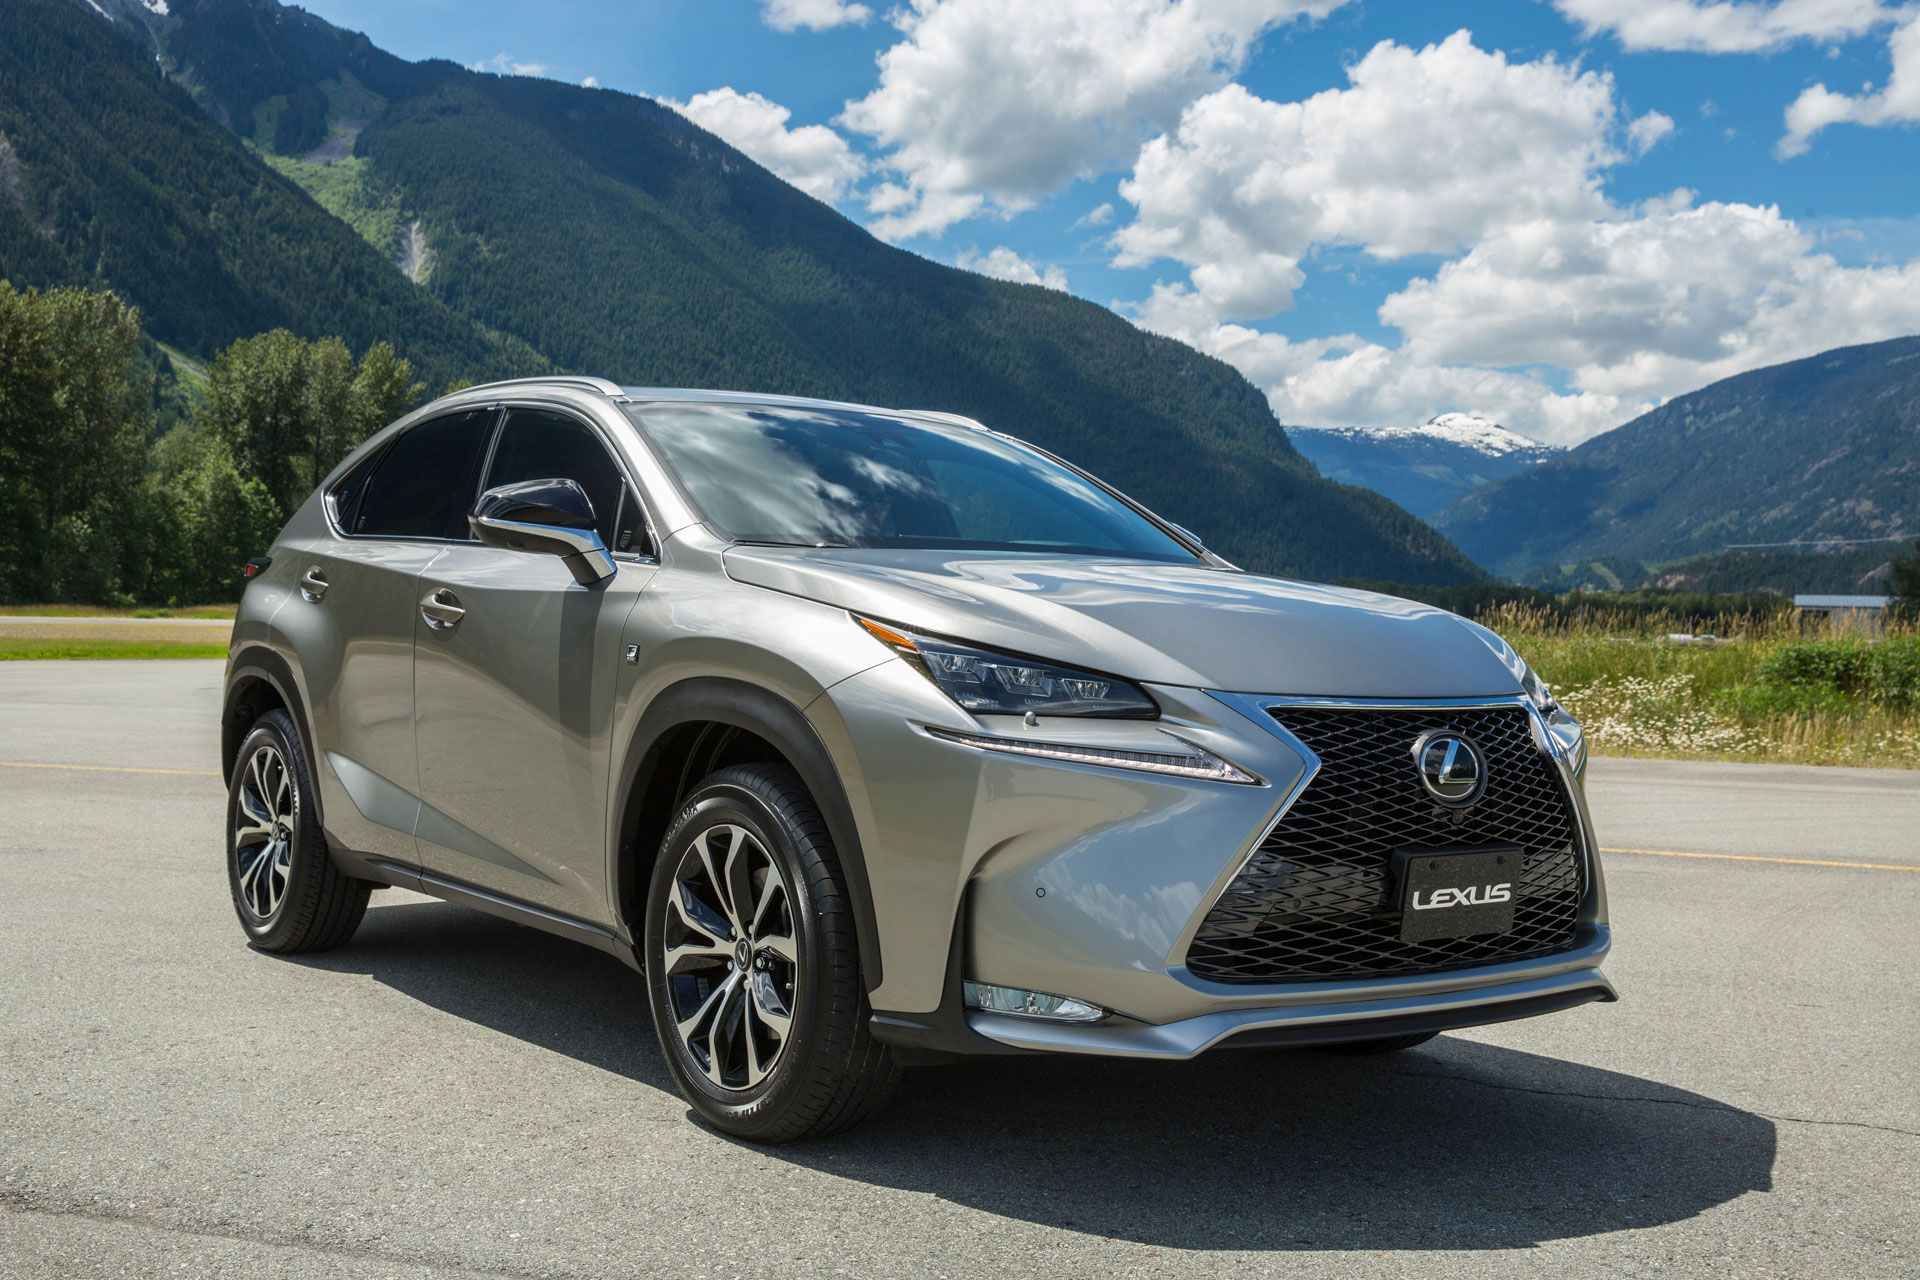 The Lexus NX 200t F Sport. Coming soon to your Detroit